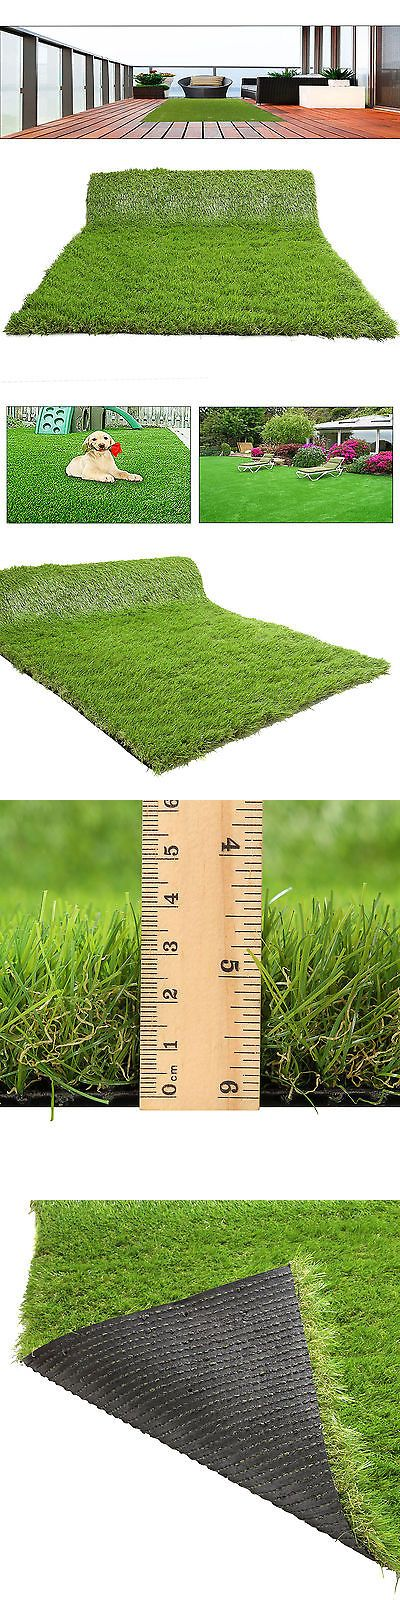 Synthetic Grass 181031: 18Mm Thick Synthetic Artificial Grass Fake Turf Lawn Mat Garden Landscape 6*3Ft -> BUY IT NOW ONLY: $44.19 on eBay!